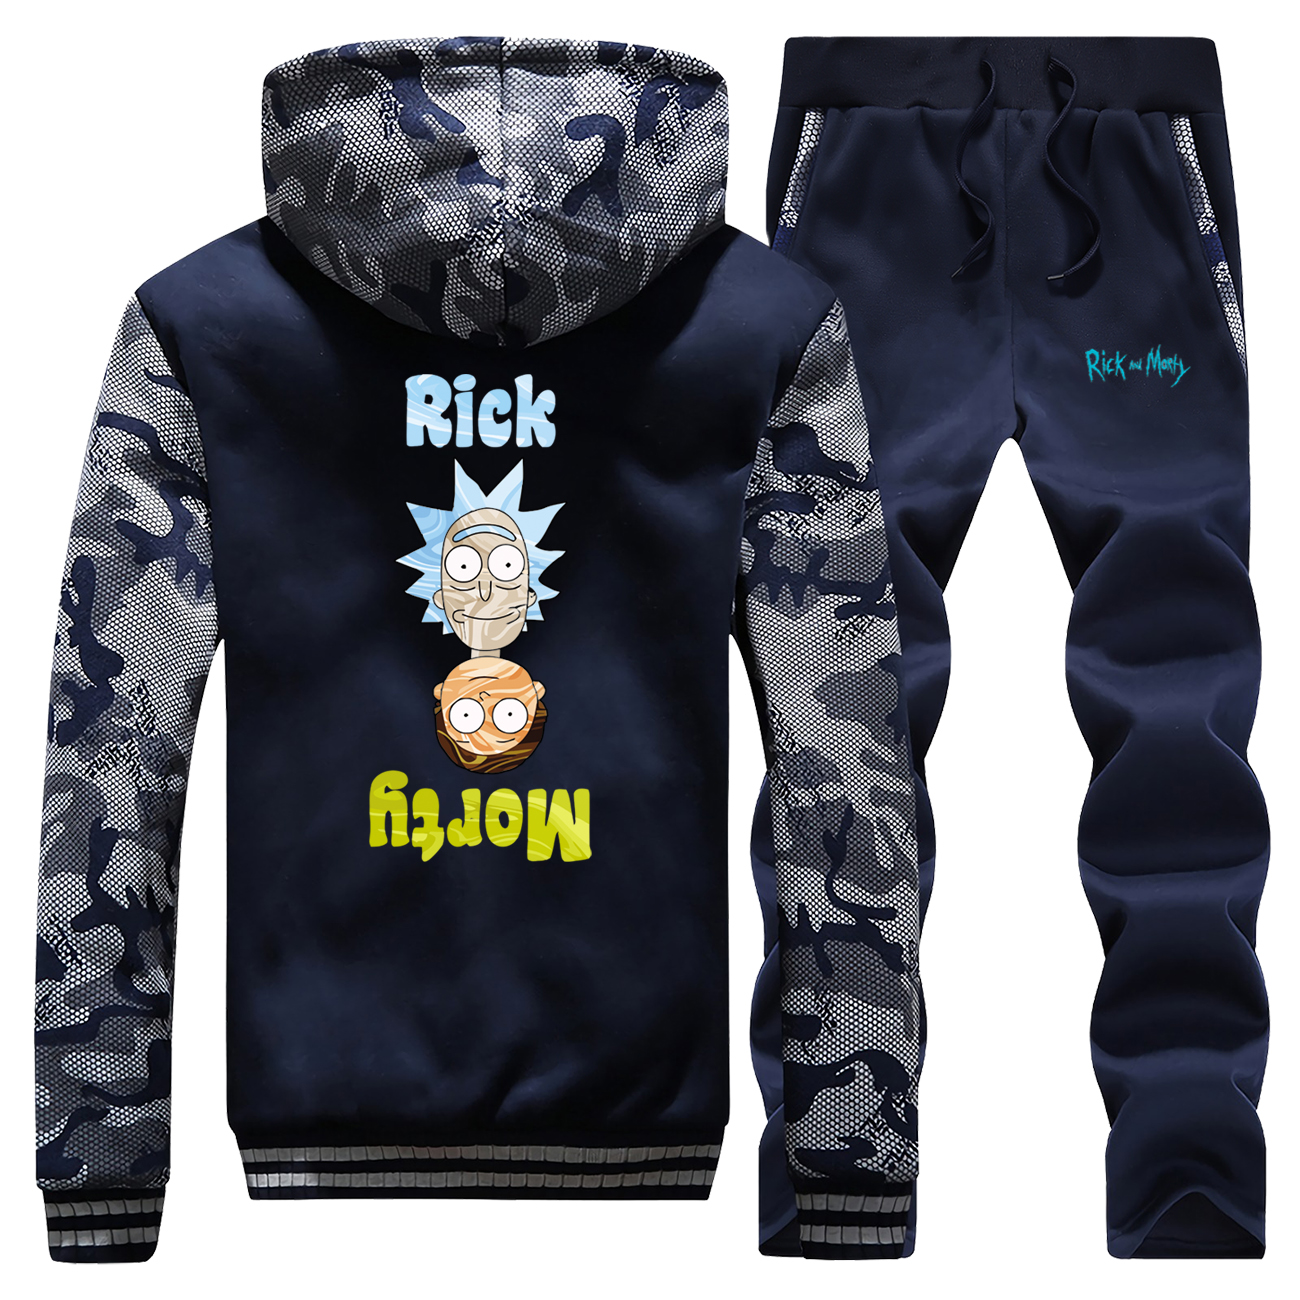 Rick And Morty Season 4 Print Camo Male Sets Thick New Arrival Jacket Winter Fleece Men's Full Suit Tracksuit Warm Sportswear